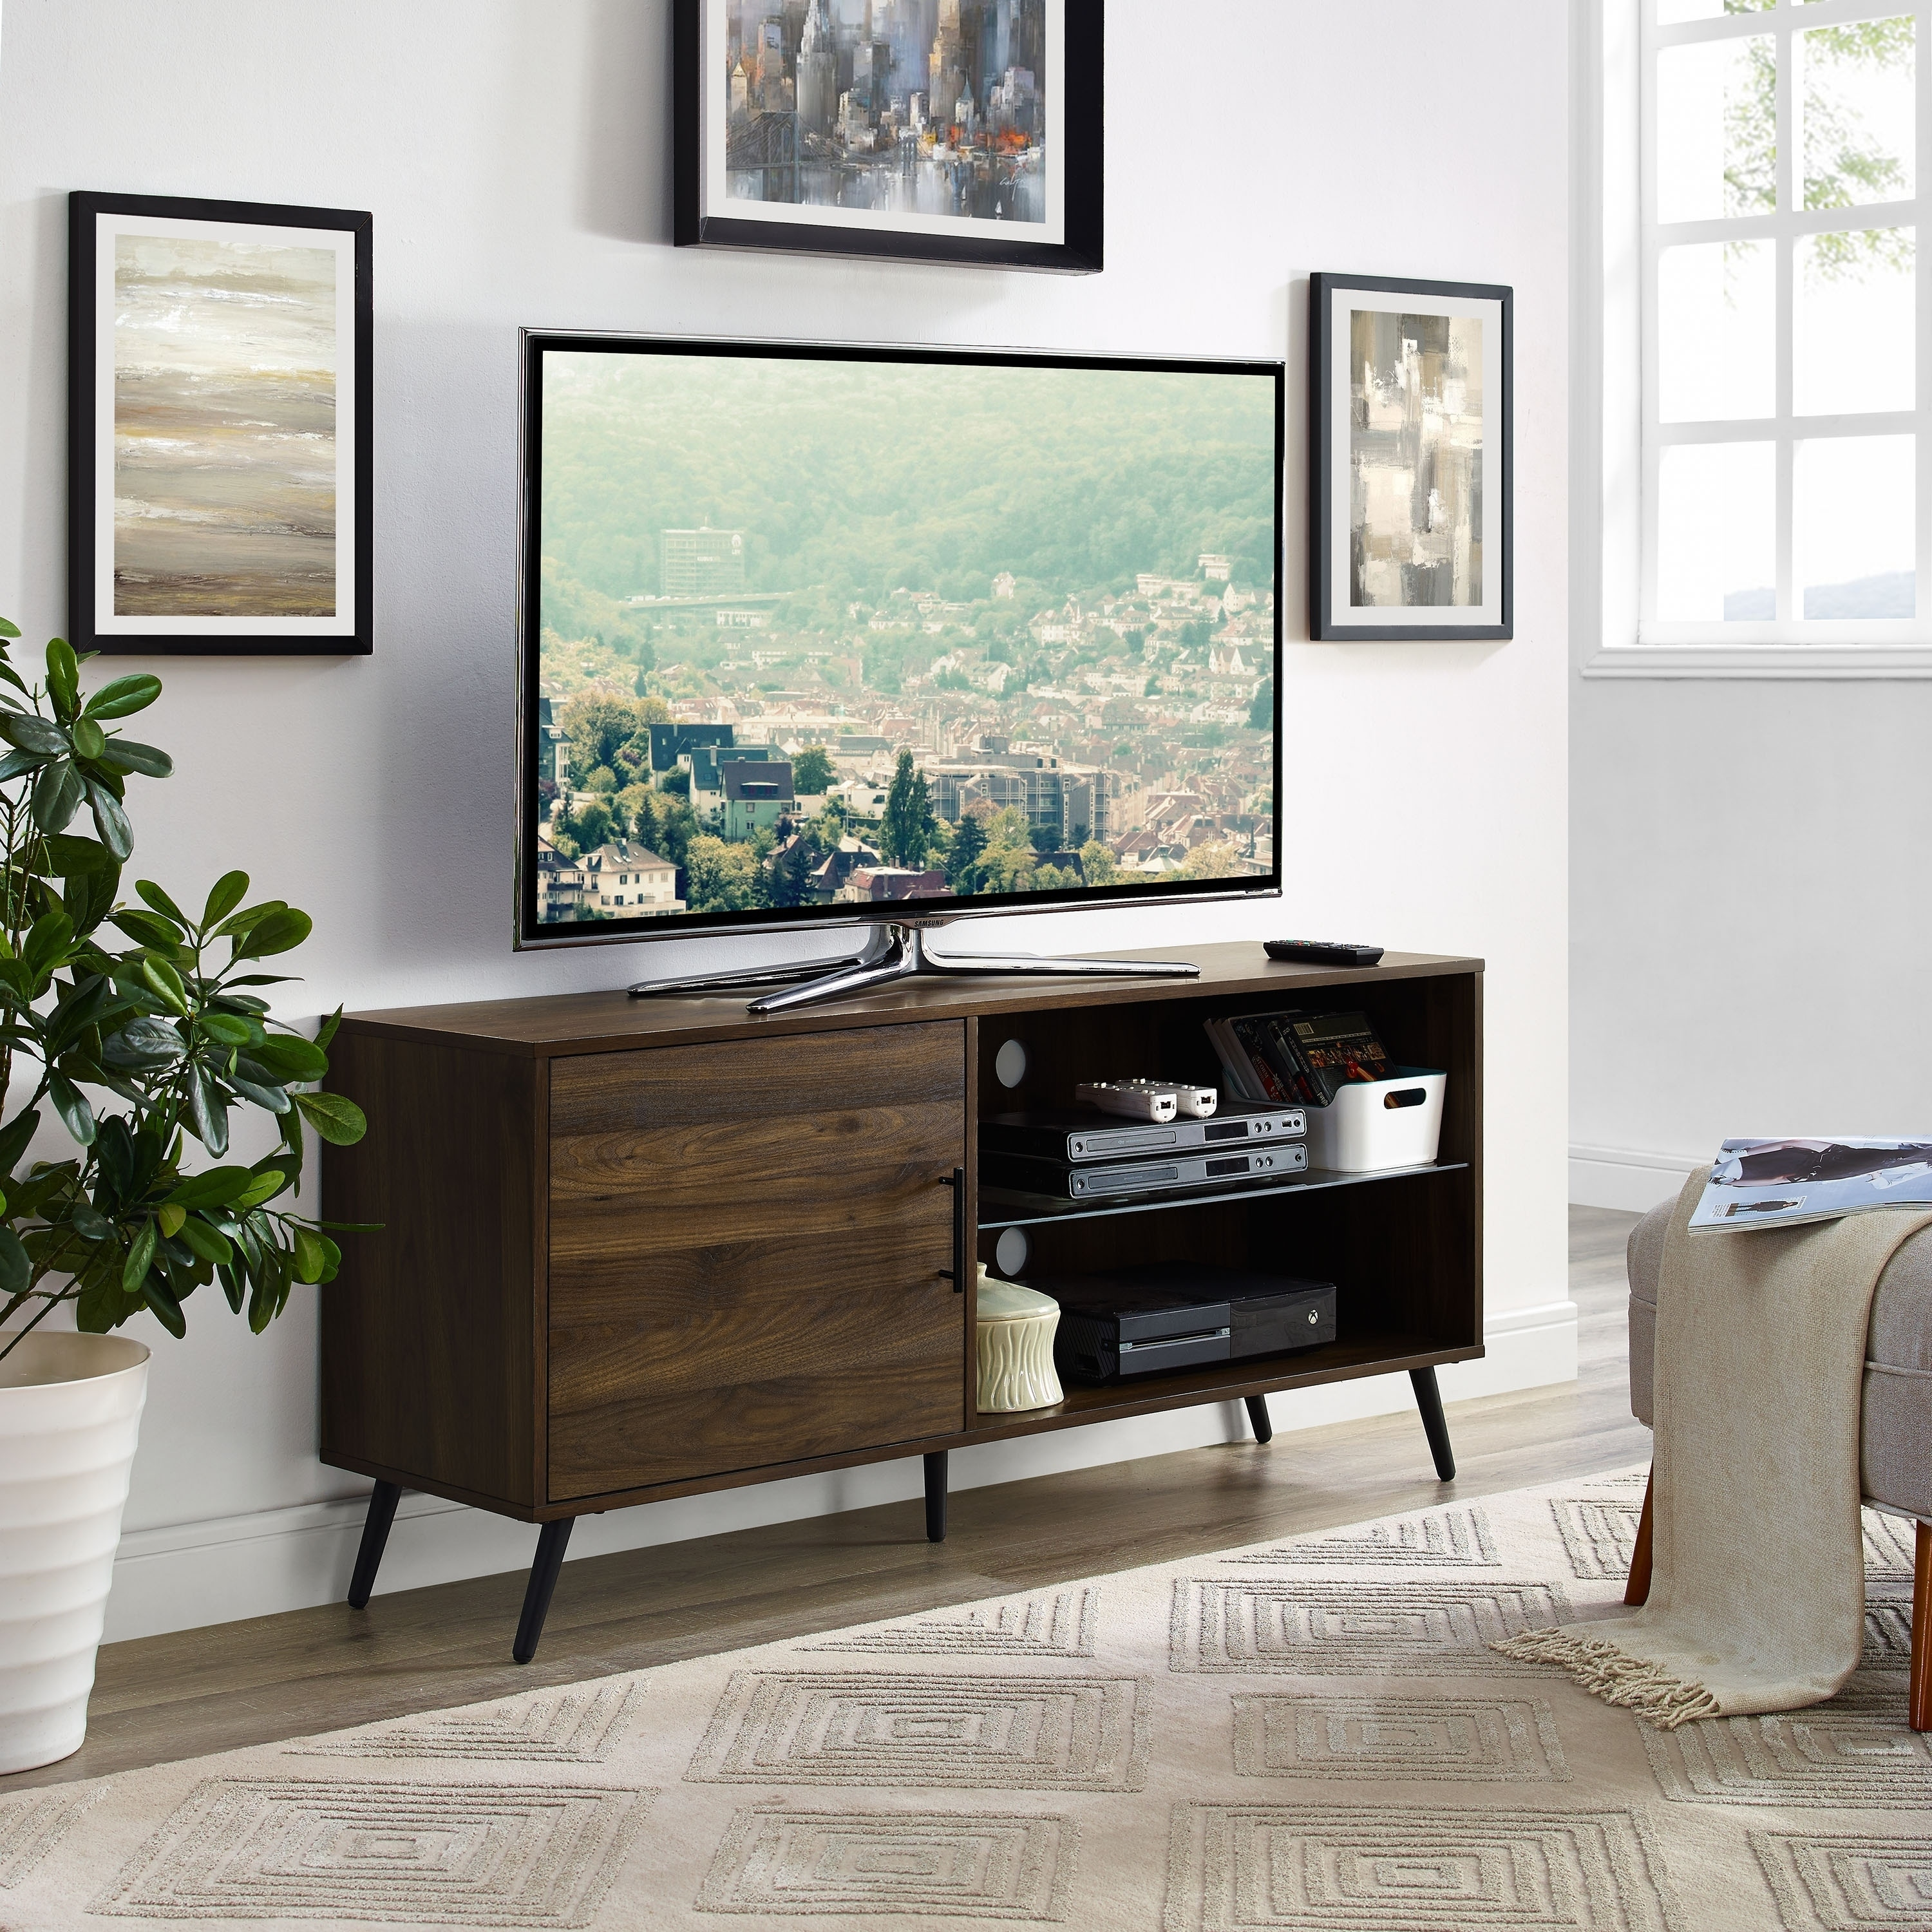 Shop 52 mid century modern tv stand media console with hidden storage free shipping on orders over 45 overstock com 19720247